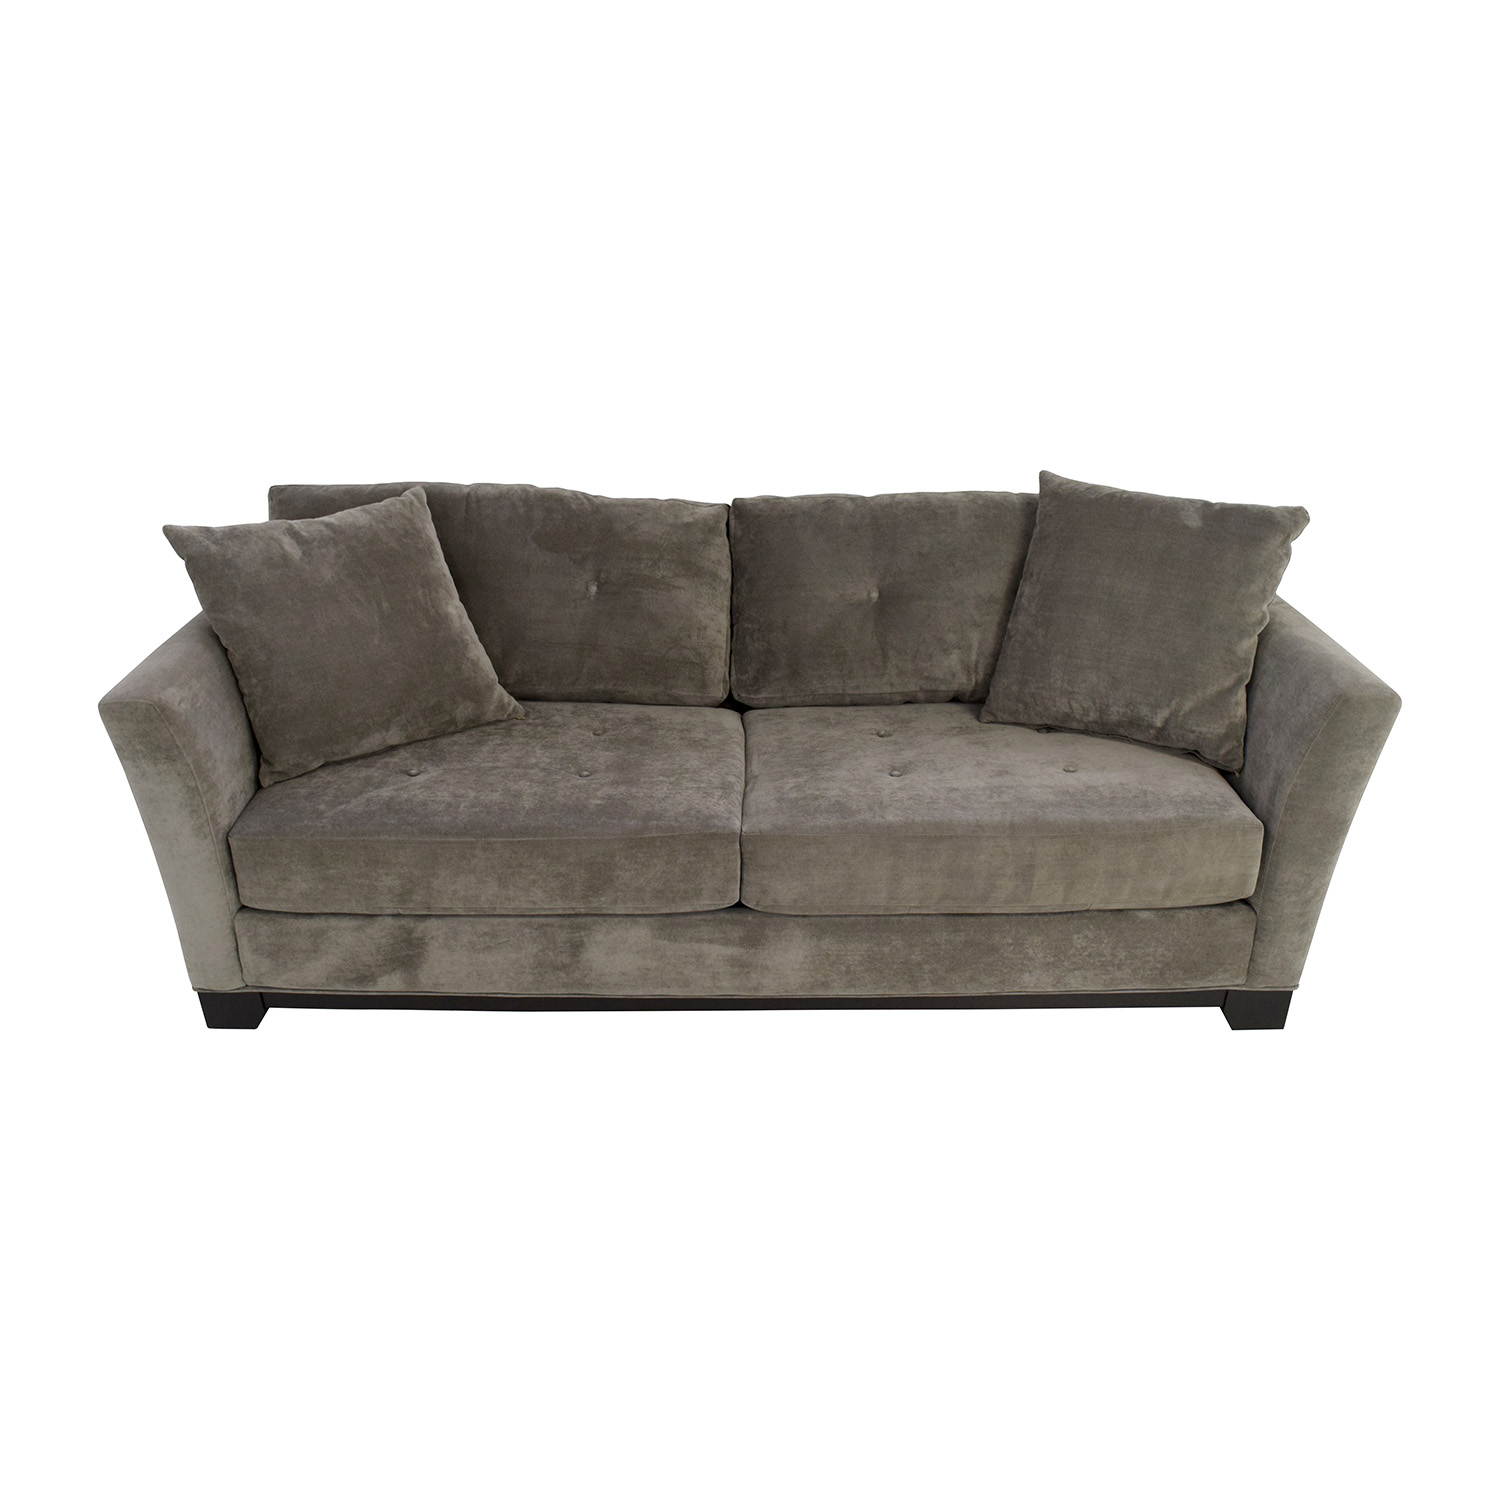 Macys Macys Grey Tufted Couch discount